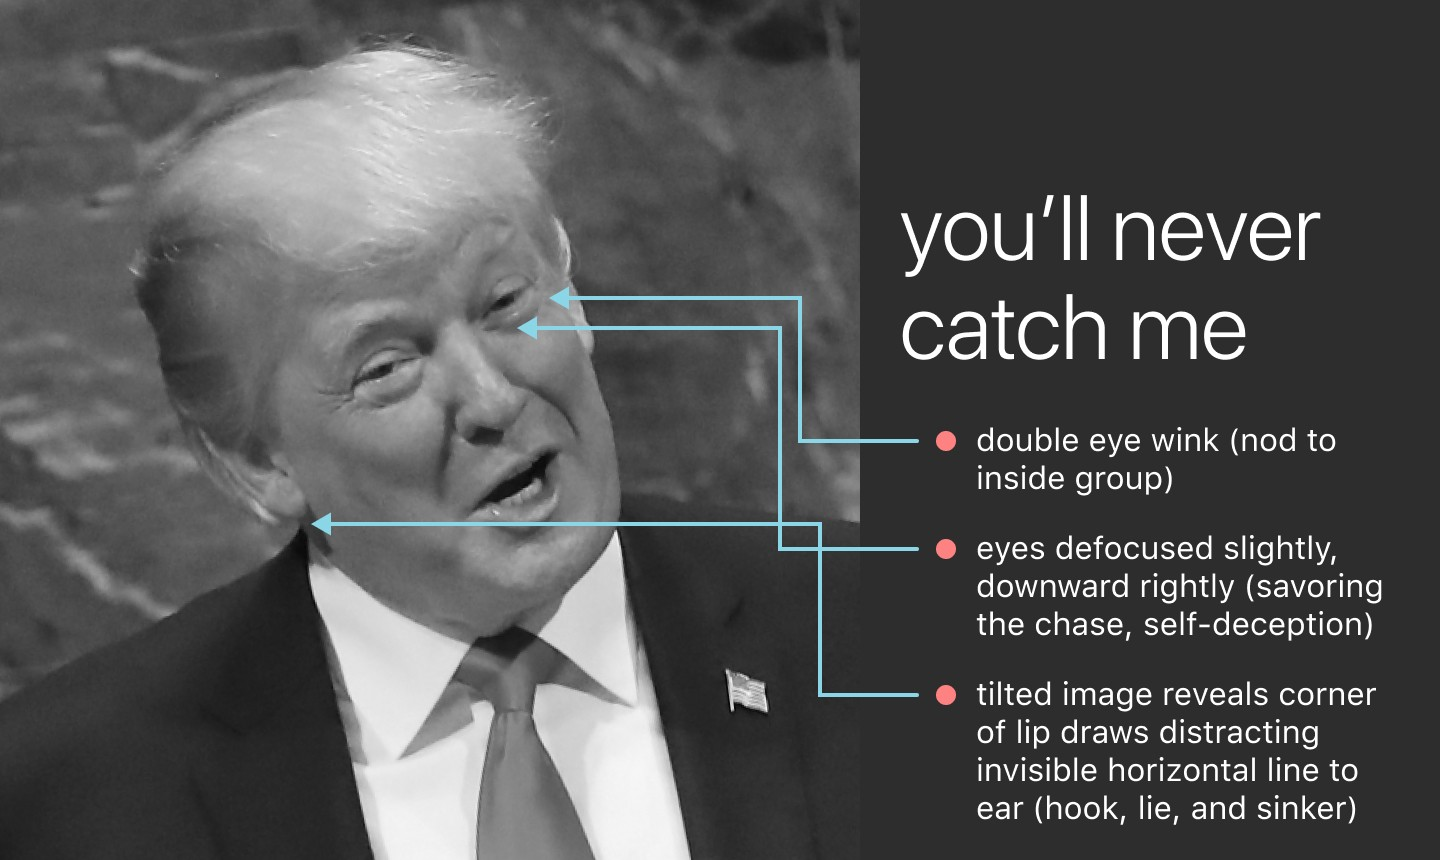 Trump's face with lines indicating: • double wink (nod to inside group) • eyes focused slightly, downward rightly (deception)